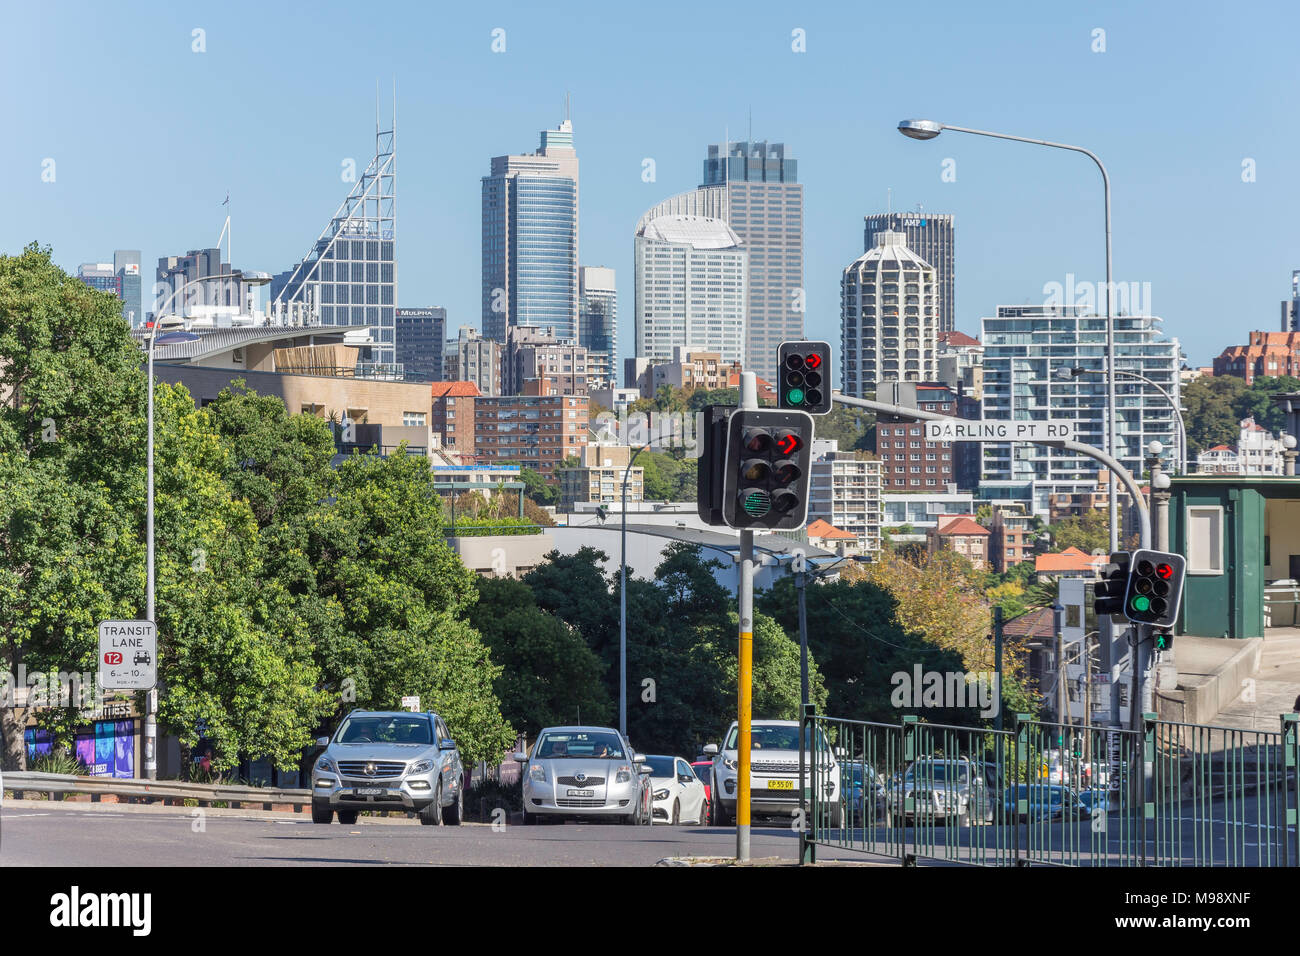 Darling Point Road, Edgecliff, Sydney, New South Wales, Australia - Stock Image